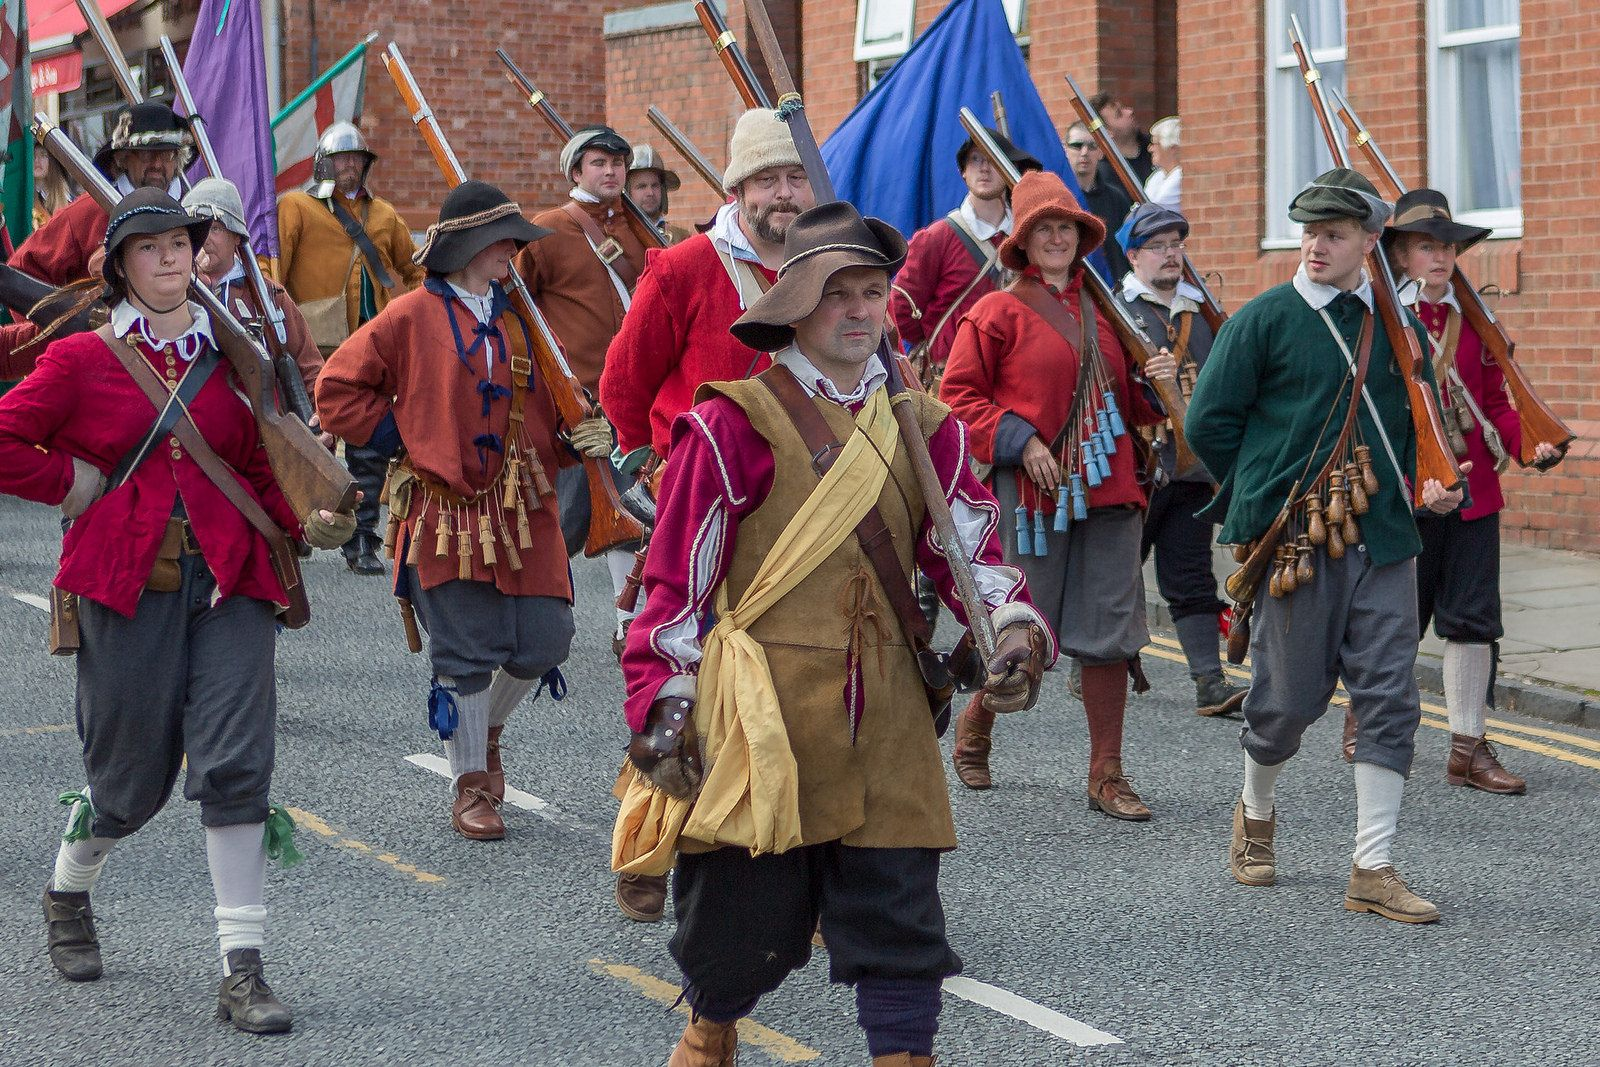 20150829-Sealed Knot-037 | by ScoopzUK